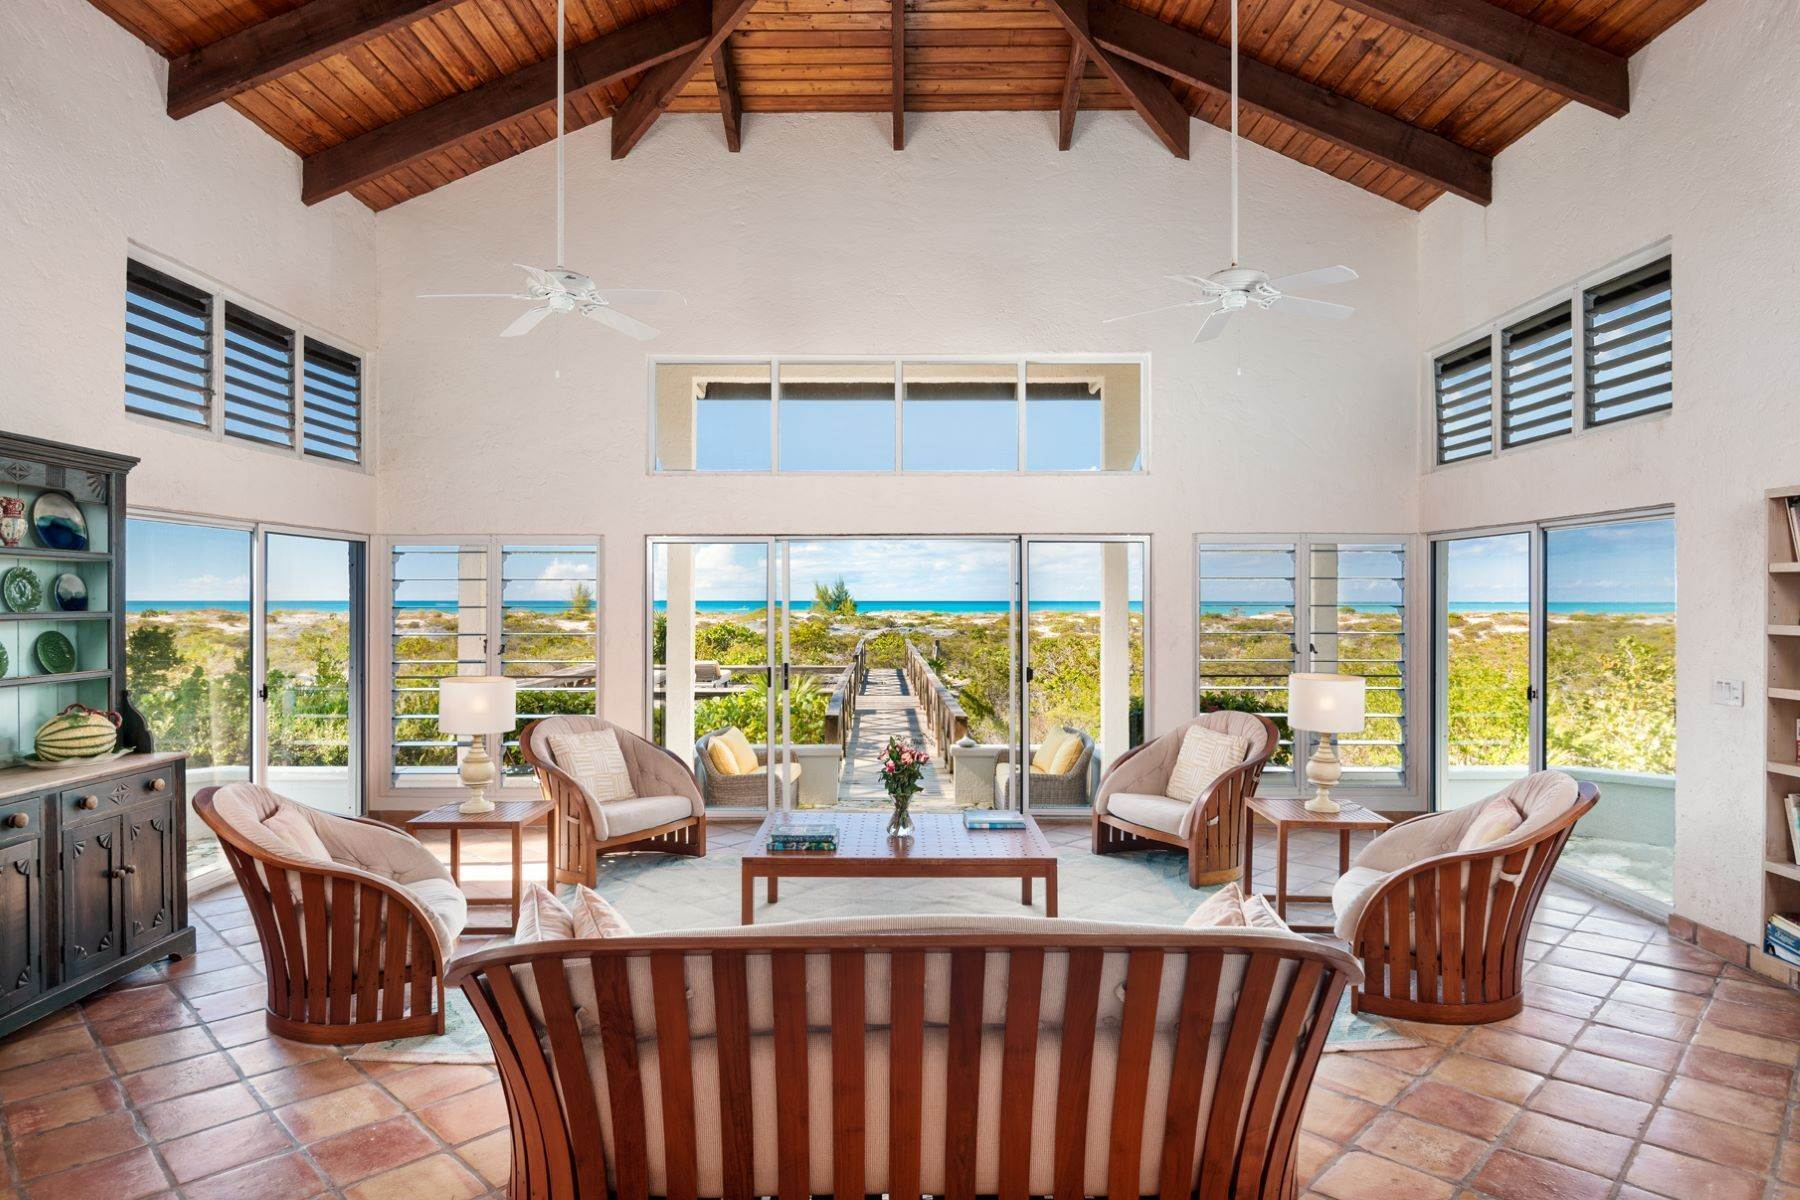 Single Family Homes for Sale at Casuarinas Cottage Pine Cay, Pine Cay, Pine Cay, TCI BWI Turks And Caicos Islands